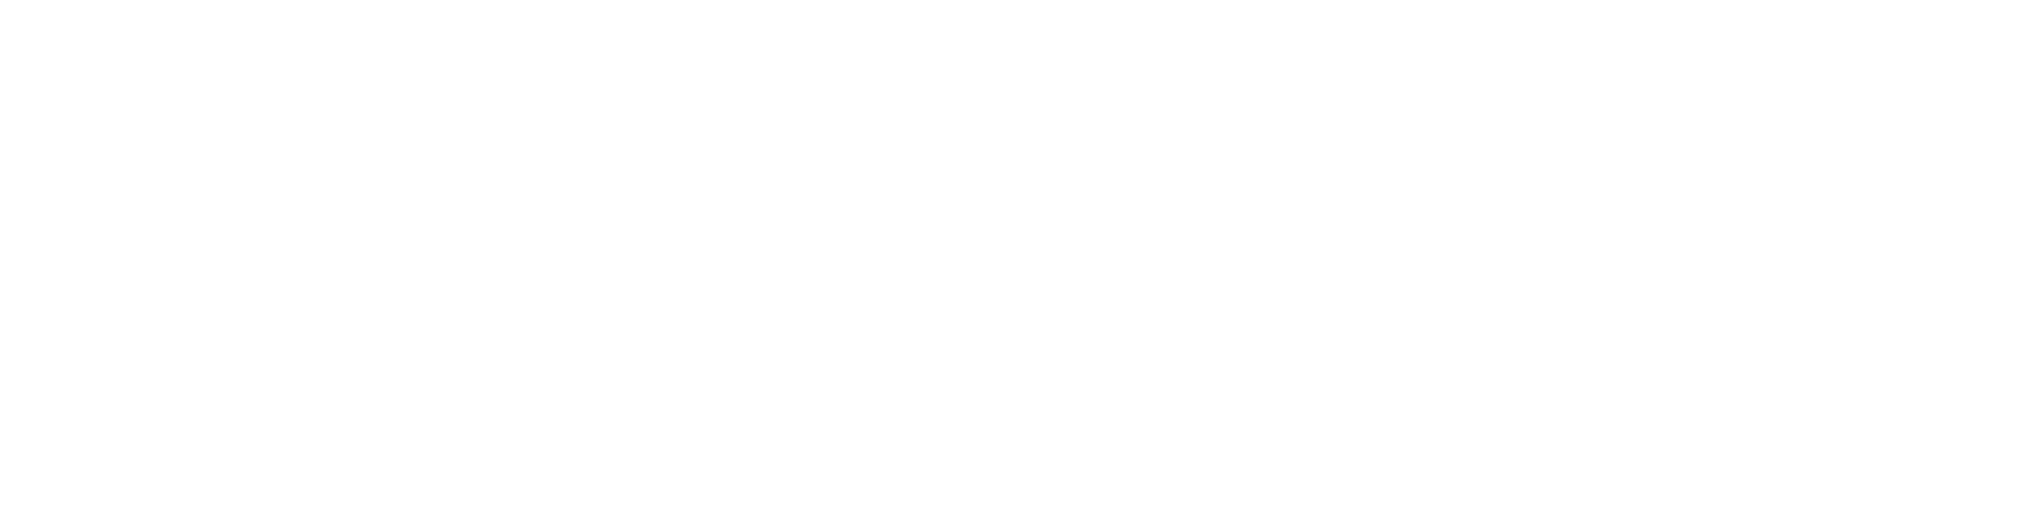 Reflections: Riding the Phoenix - Our Journey Back to the Sky